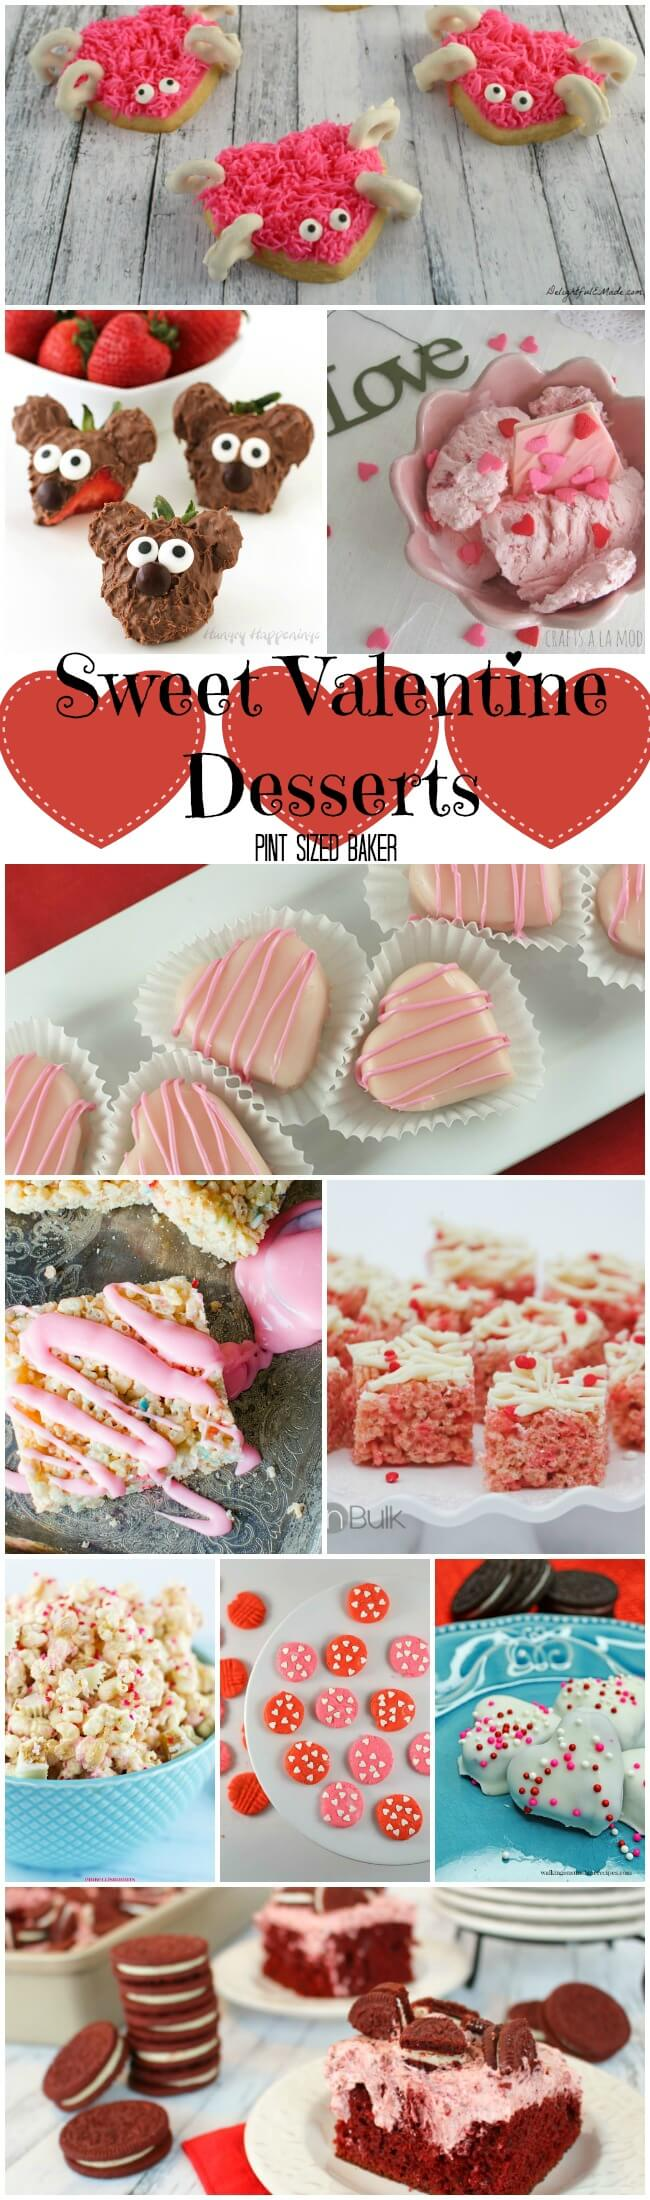 So many sweet Valentine desserts, so little time. Celebrate the ones you love with a new sweet treat everyday. Easy snacks to complex desserts.